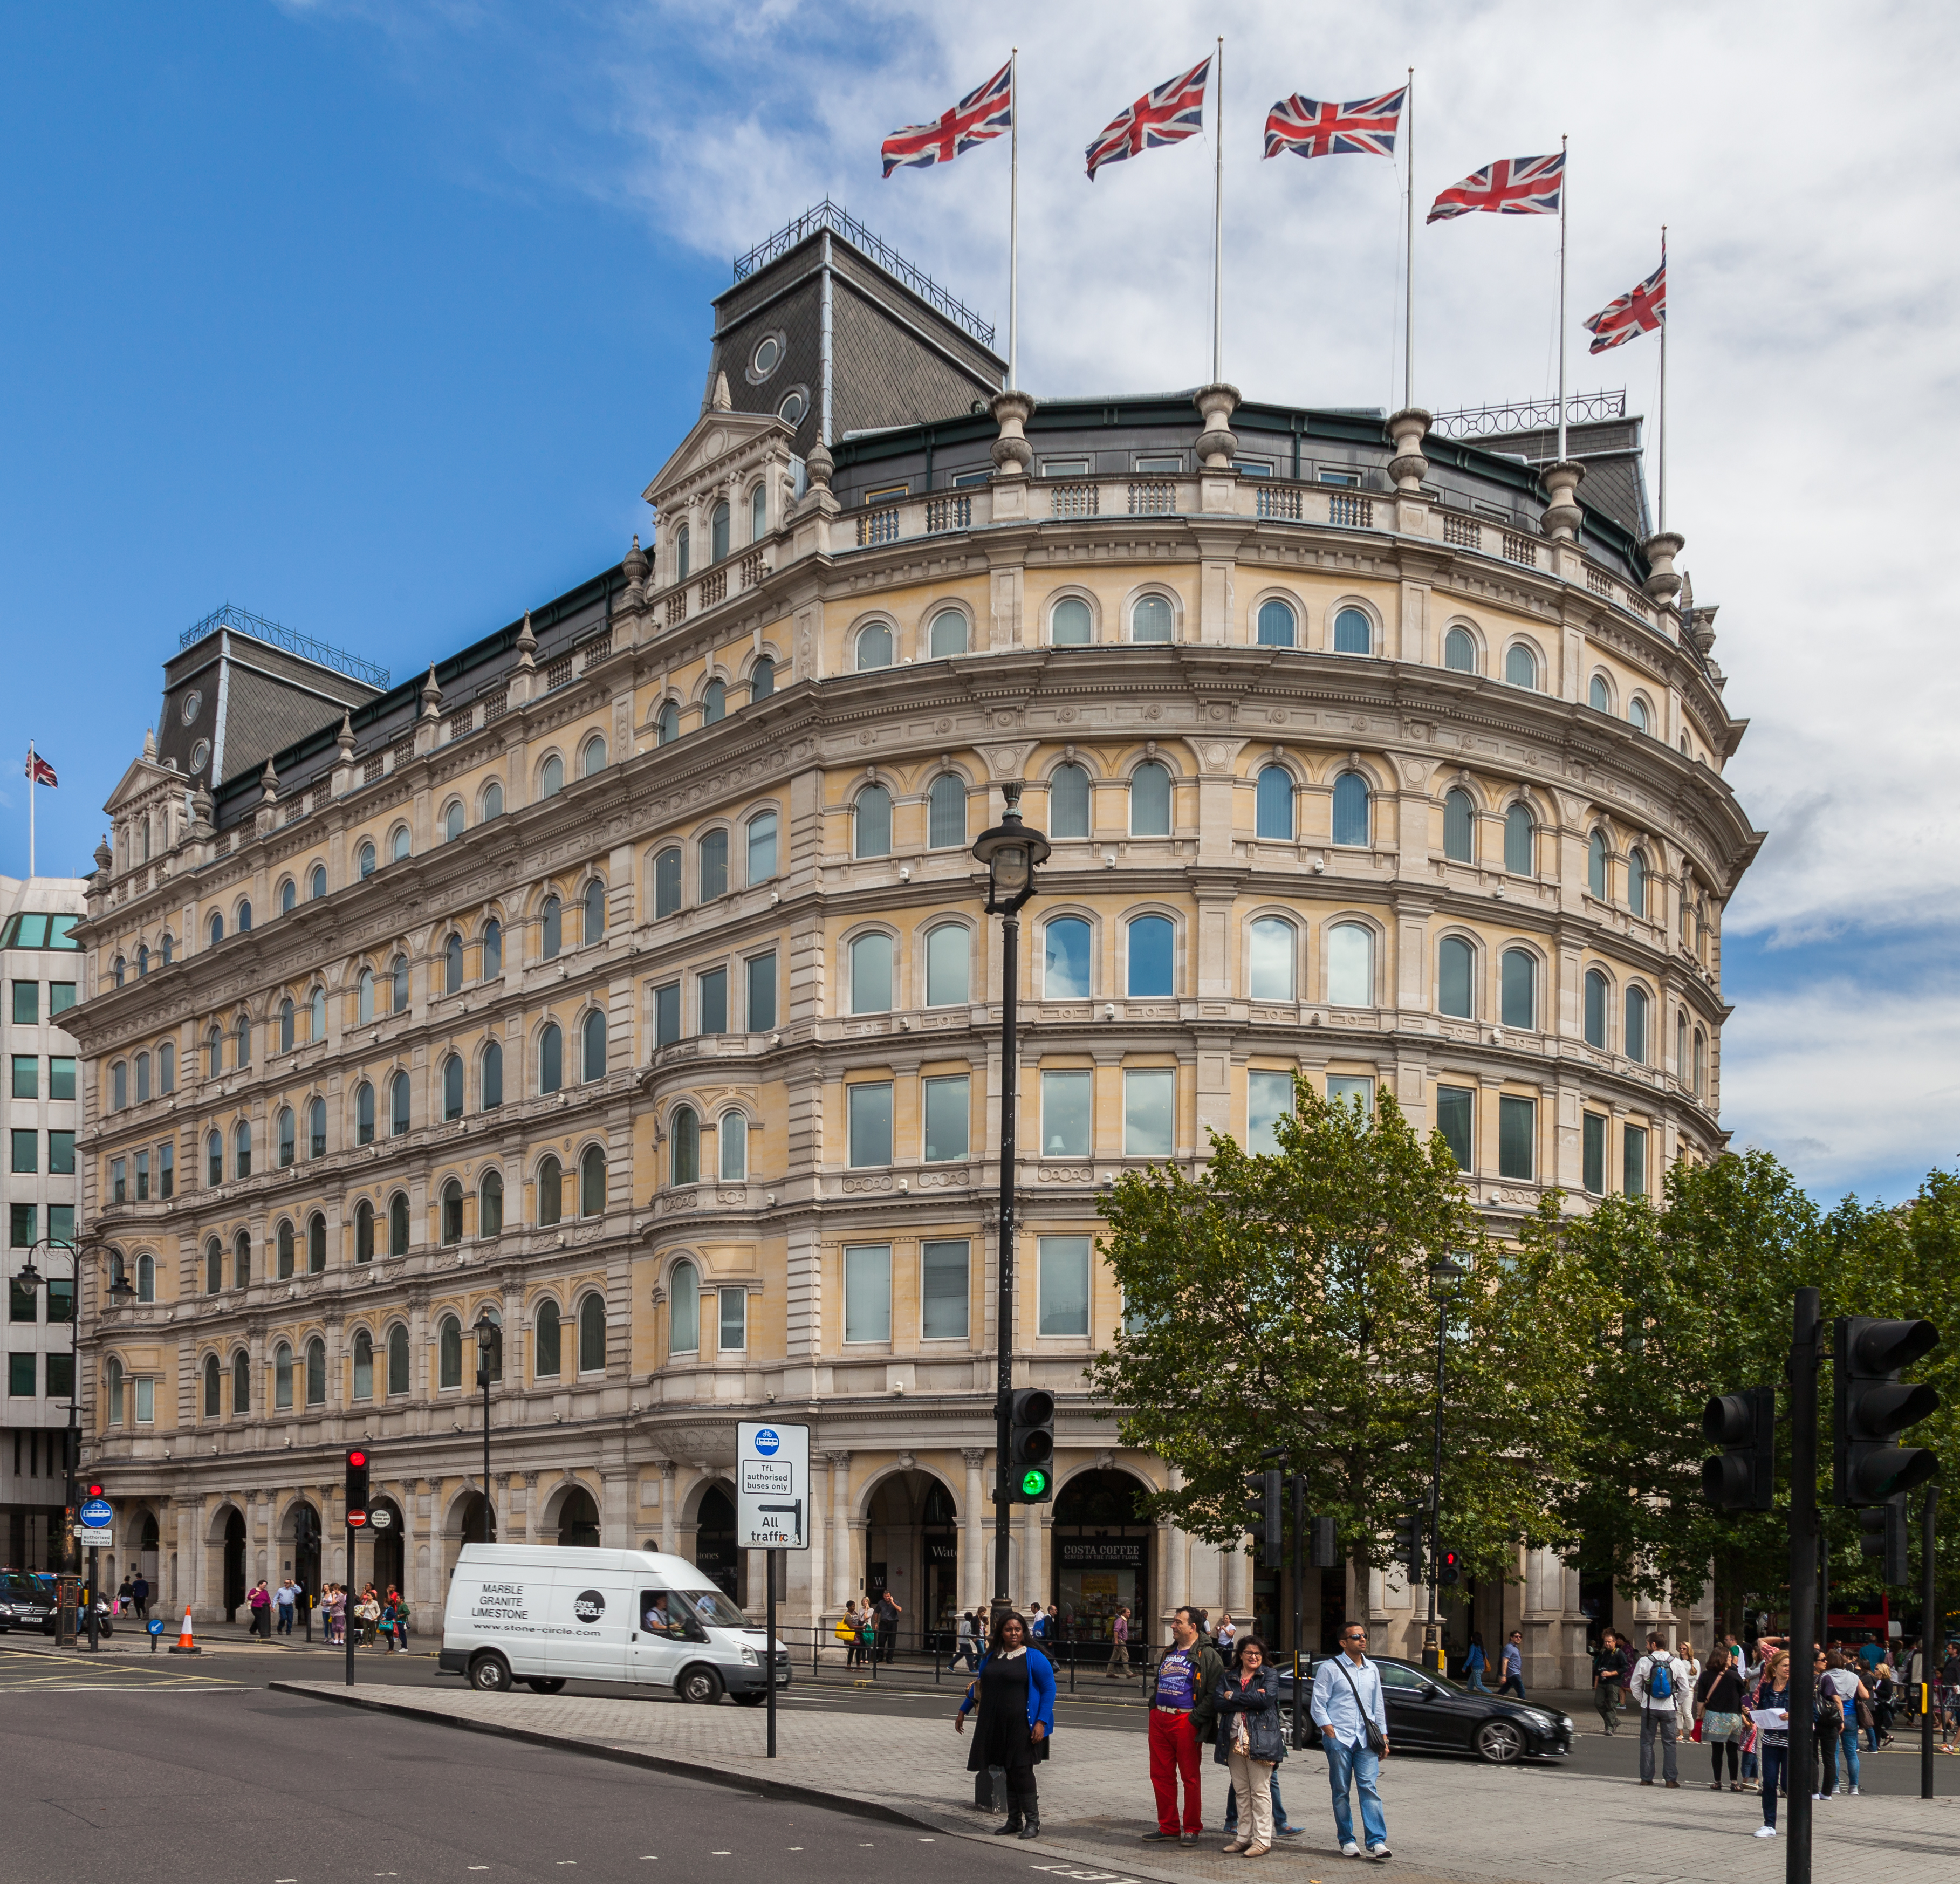 The Grand Hotel Londres